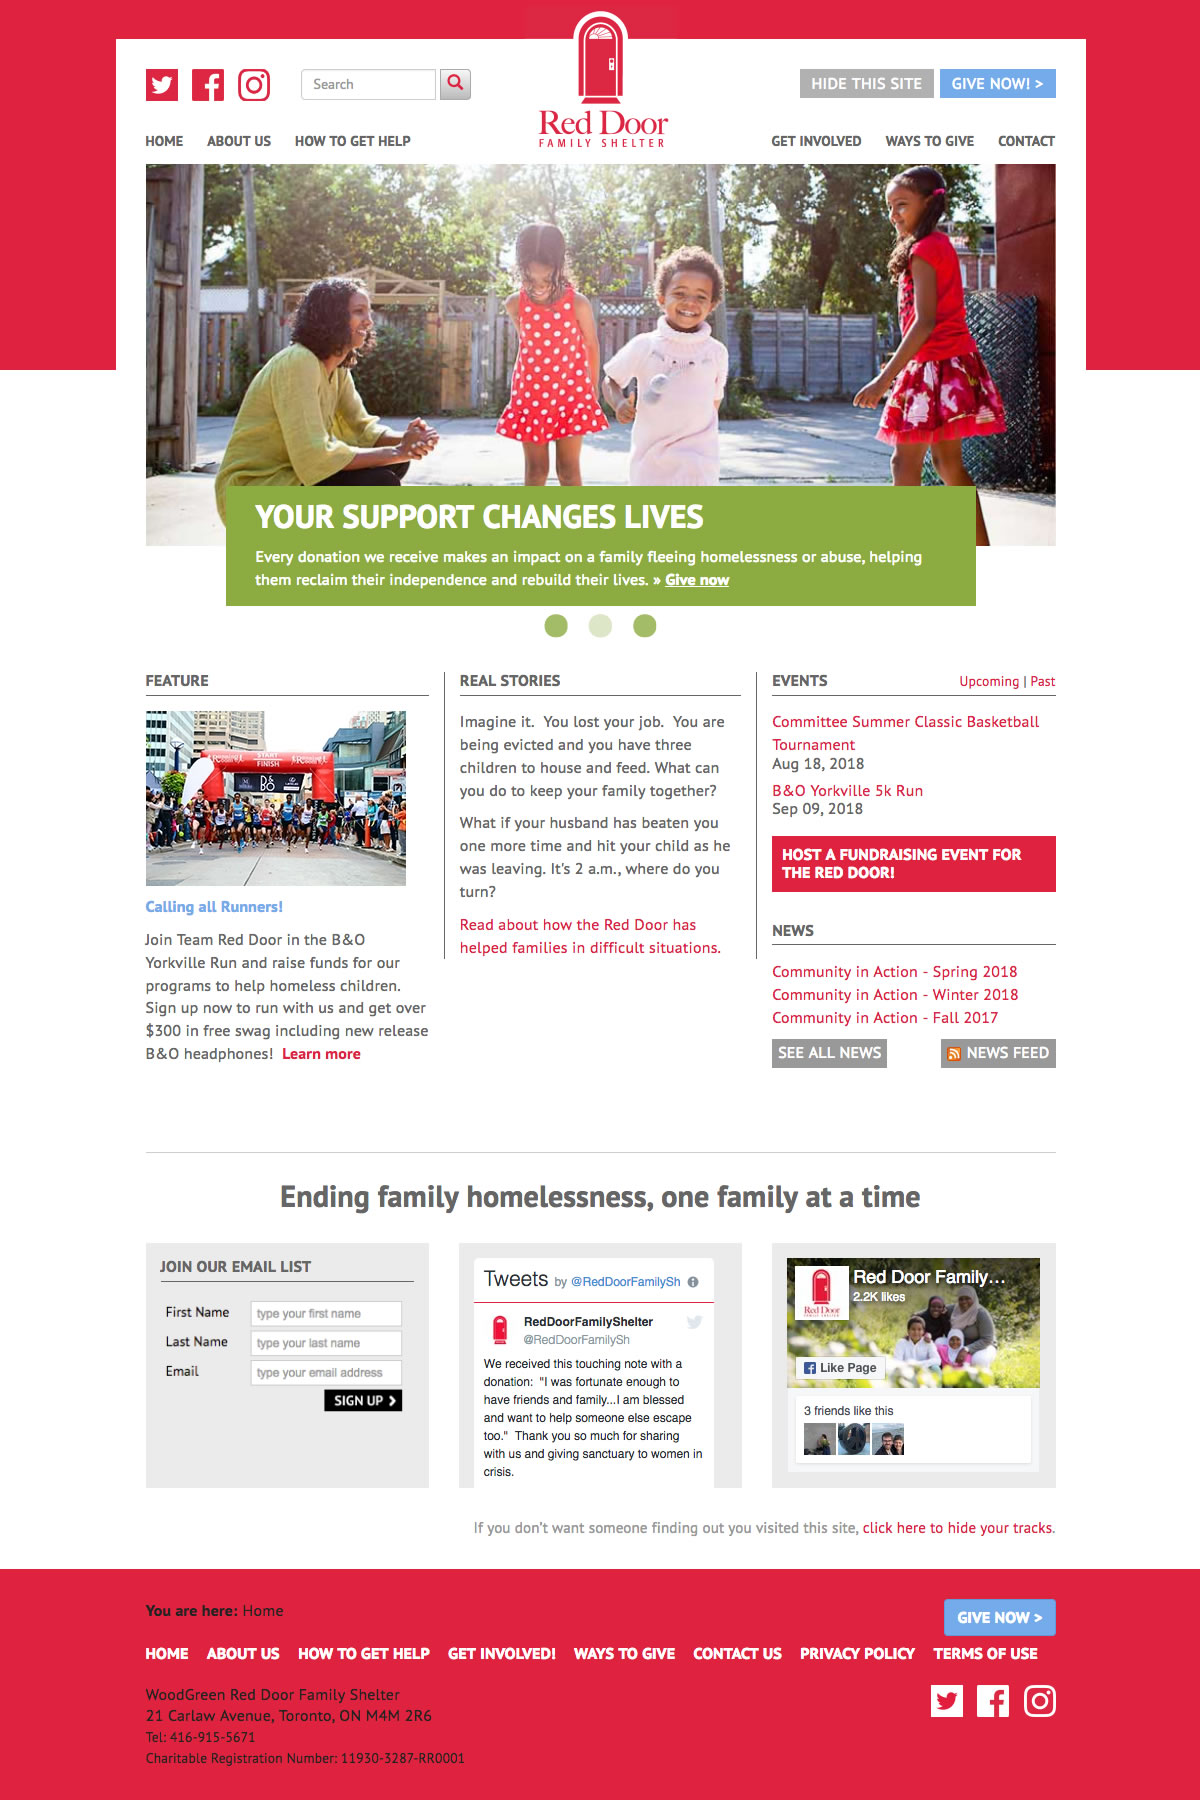 Red Door Family Shelter web site screenshot